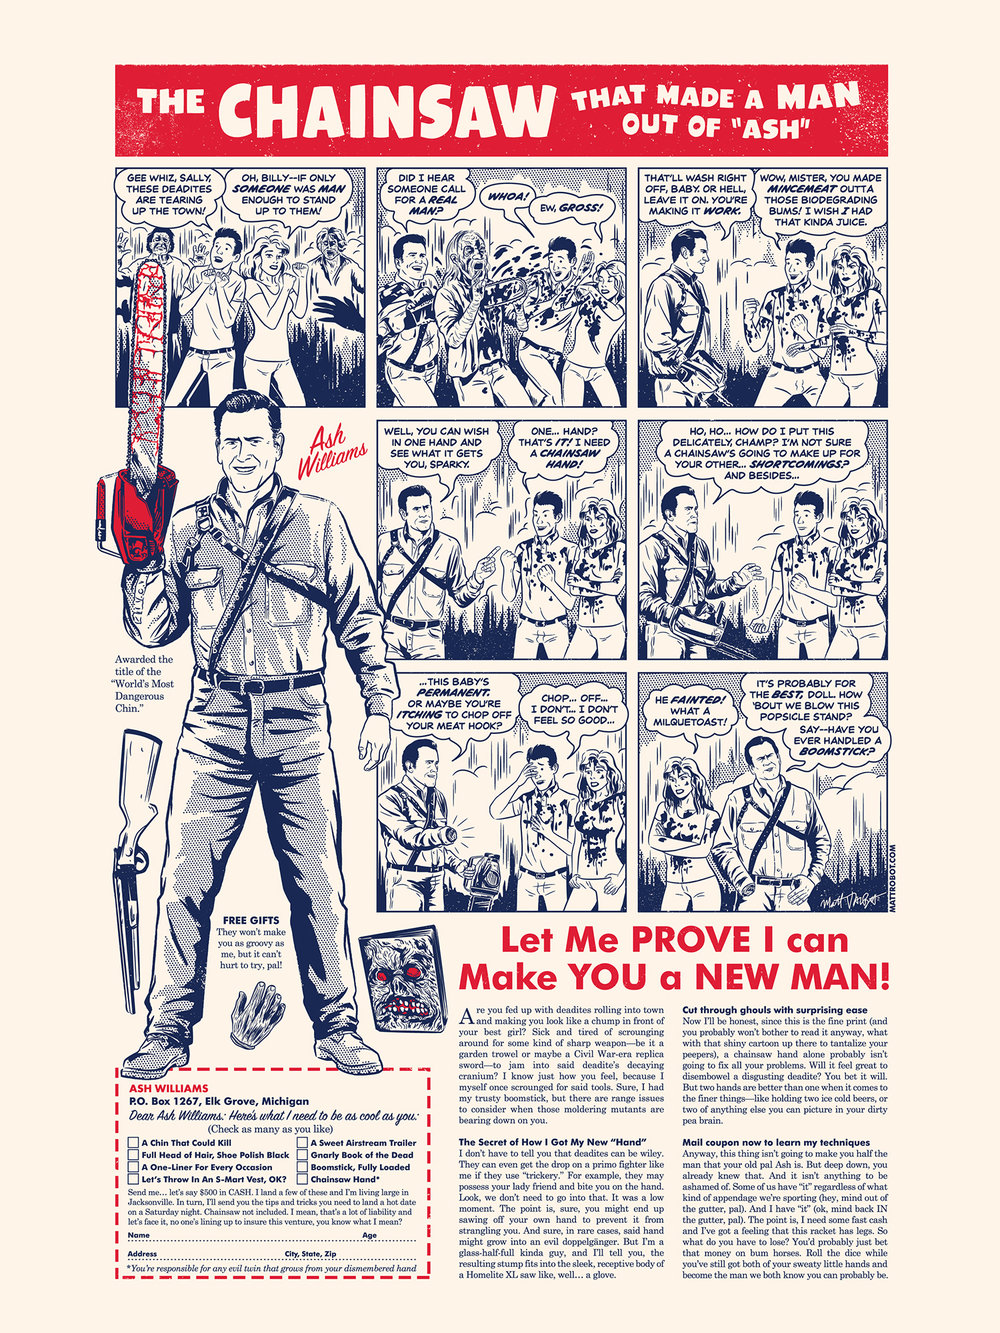 Ash Vs. Evil Dead print for Gallery 1988 by Matt Talbot